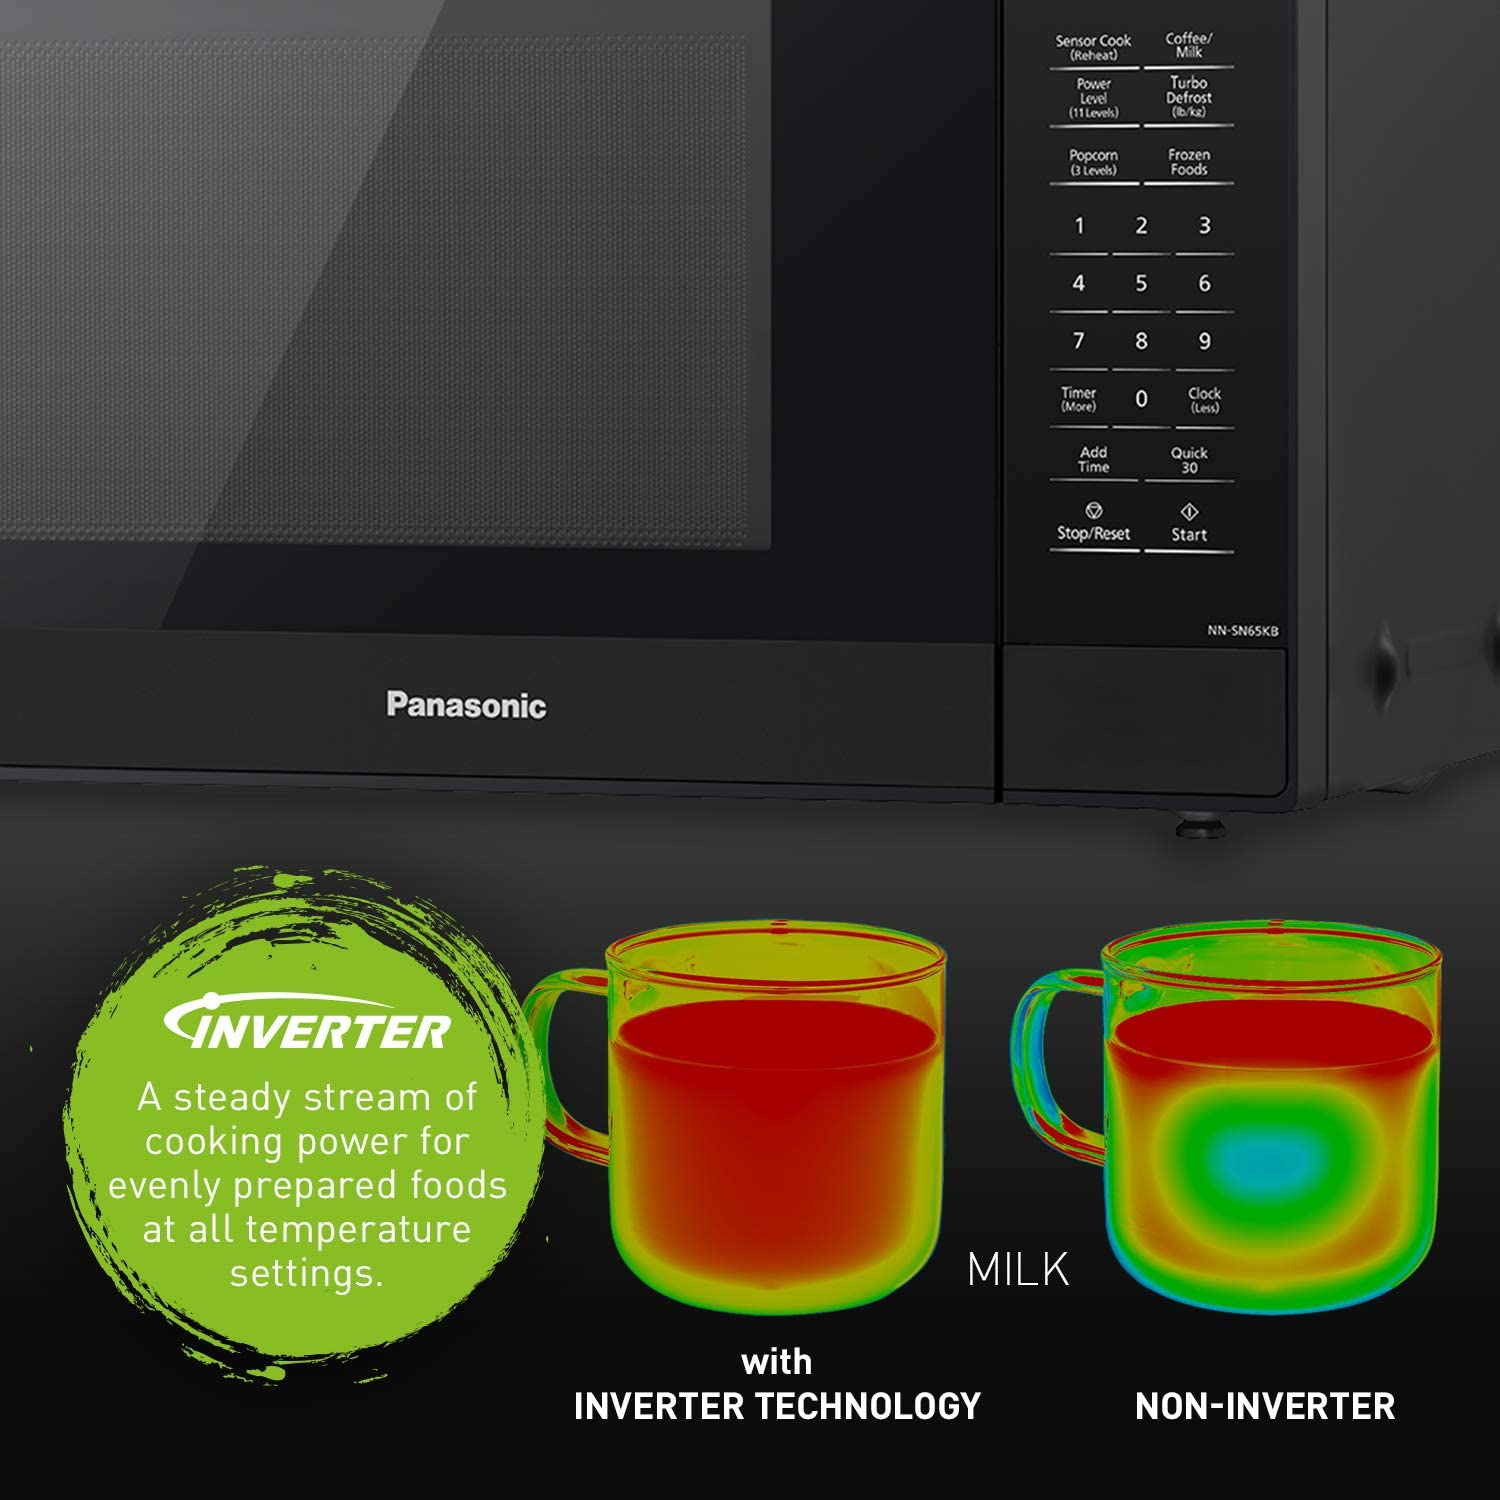 Inverter microwave oven technology